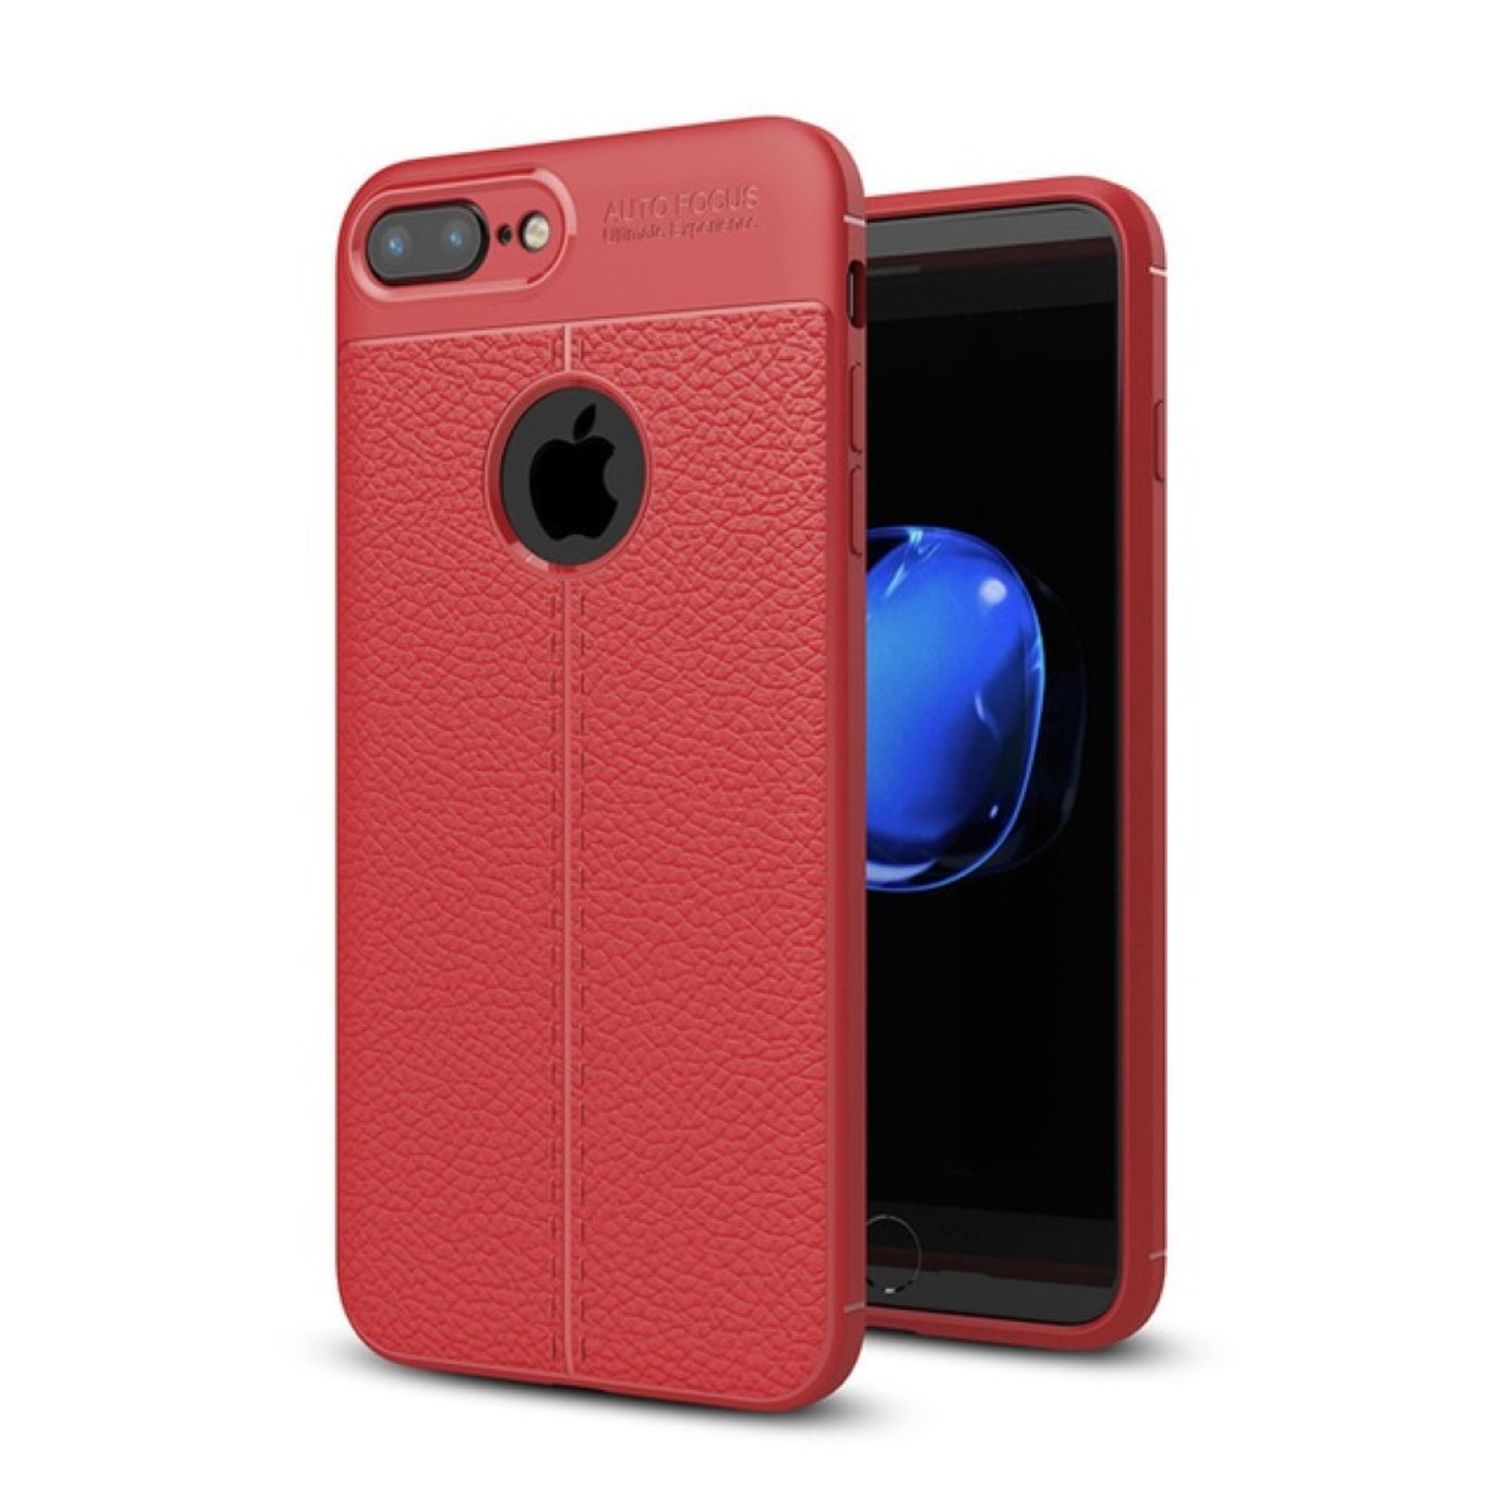 handy h lle schutz case f r apple iphone 7 plus cover. Black Bedroom Furniture Sets. Home Design Ideas